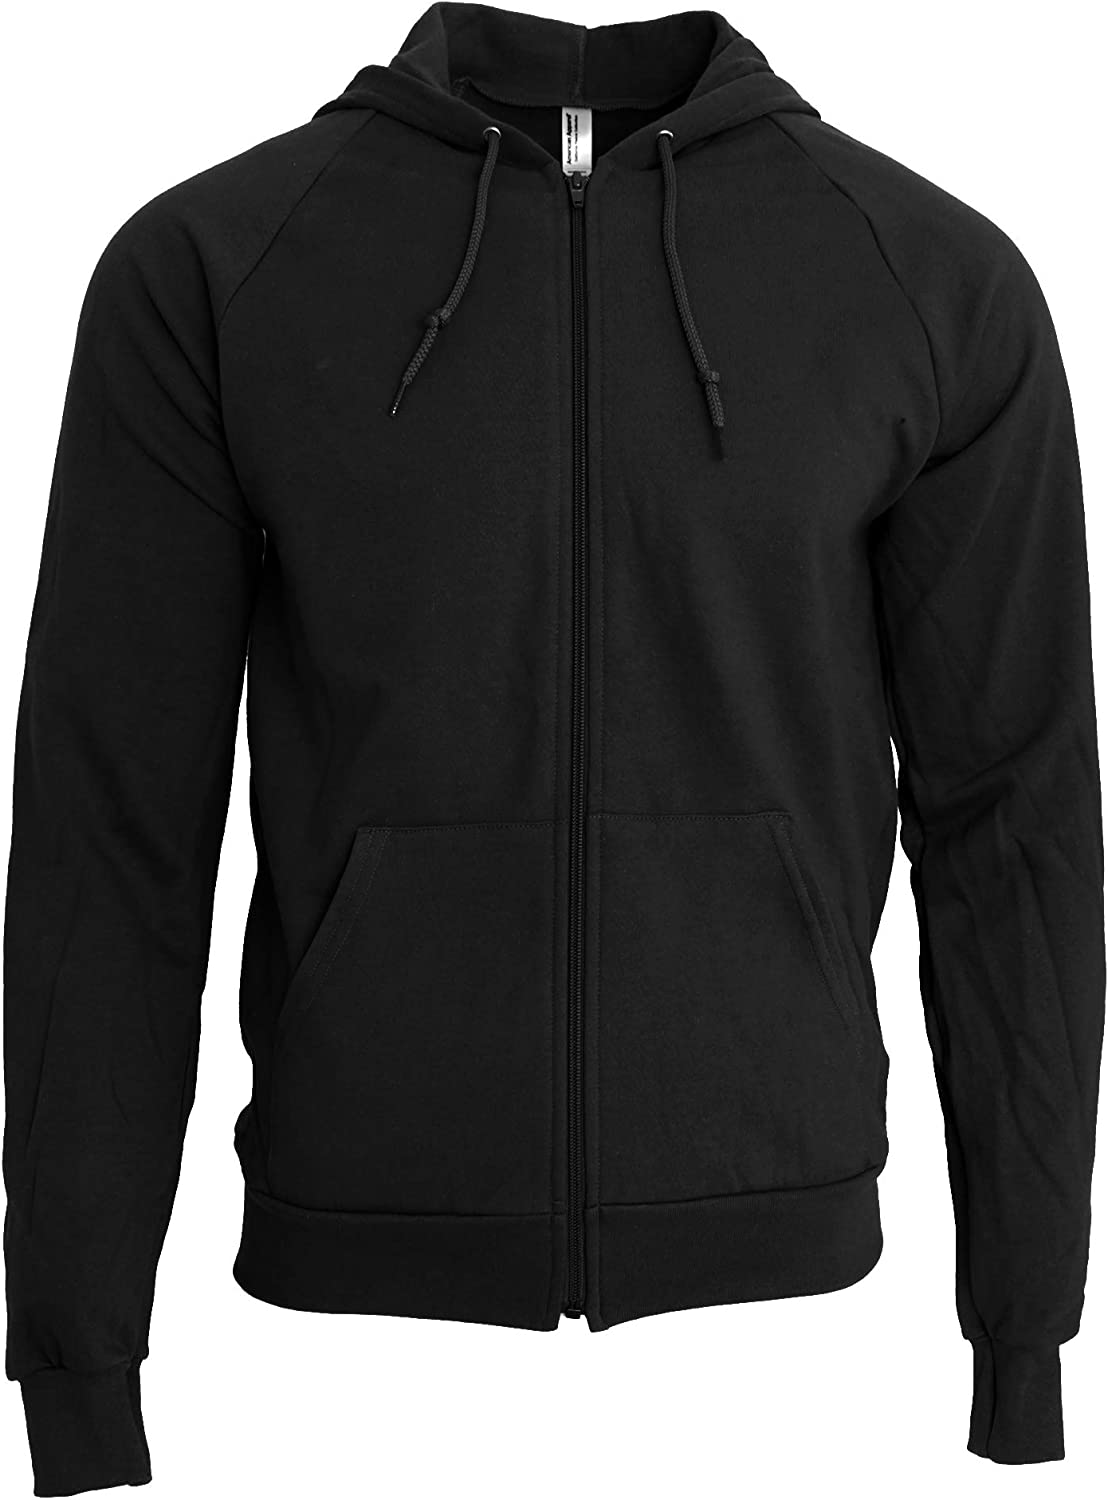 American Apparel Unisex California Zip Hooded Sweatshirt